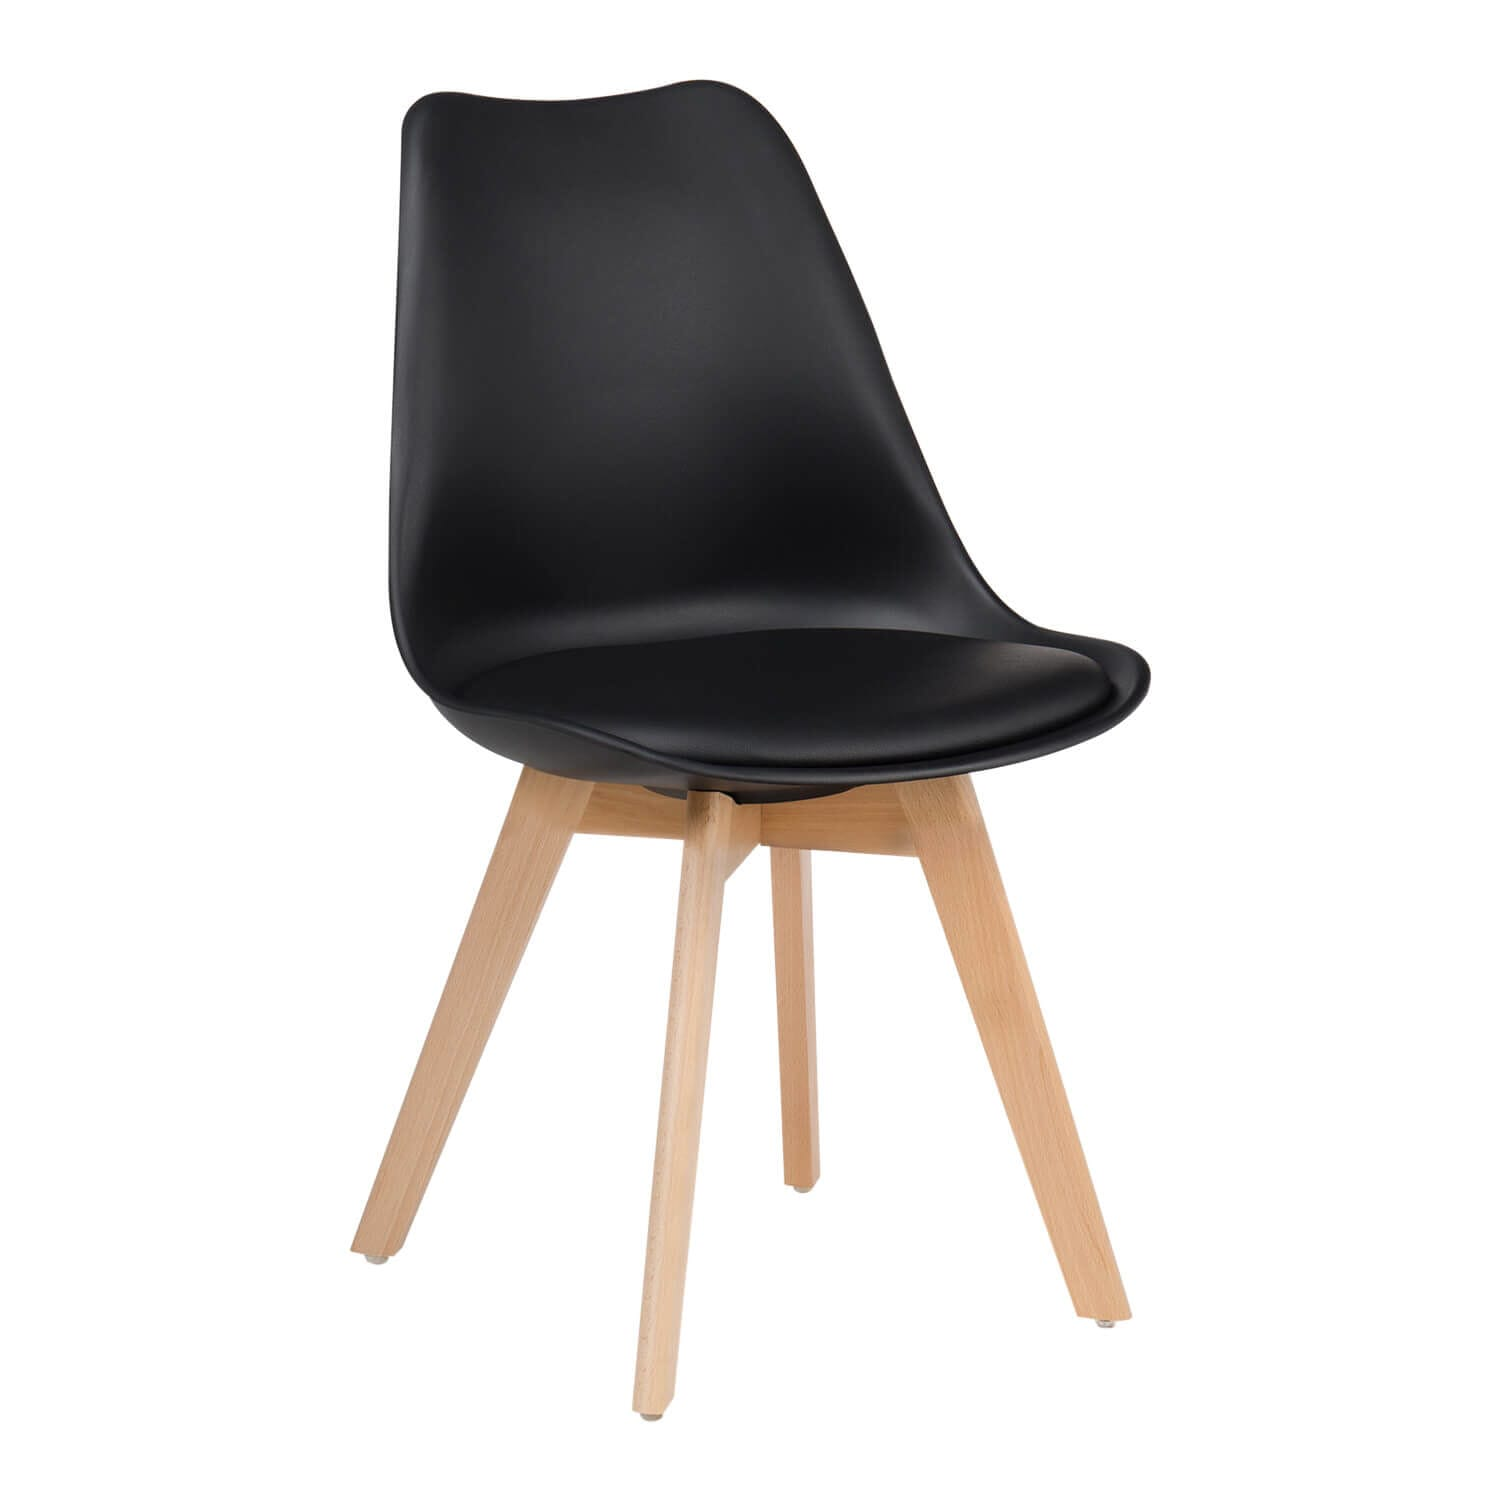 Nordic Style Chair with Black Seat